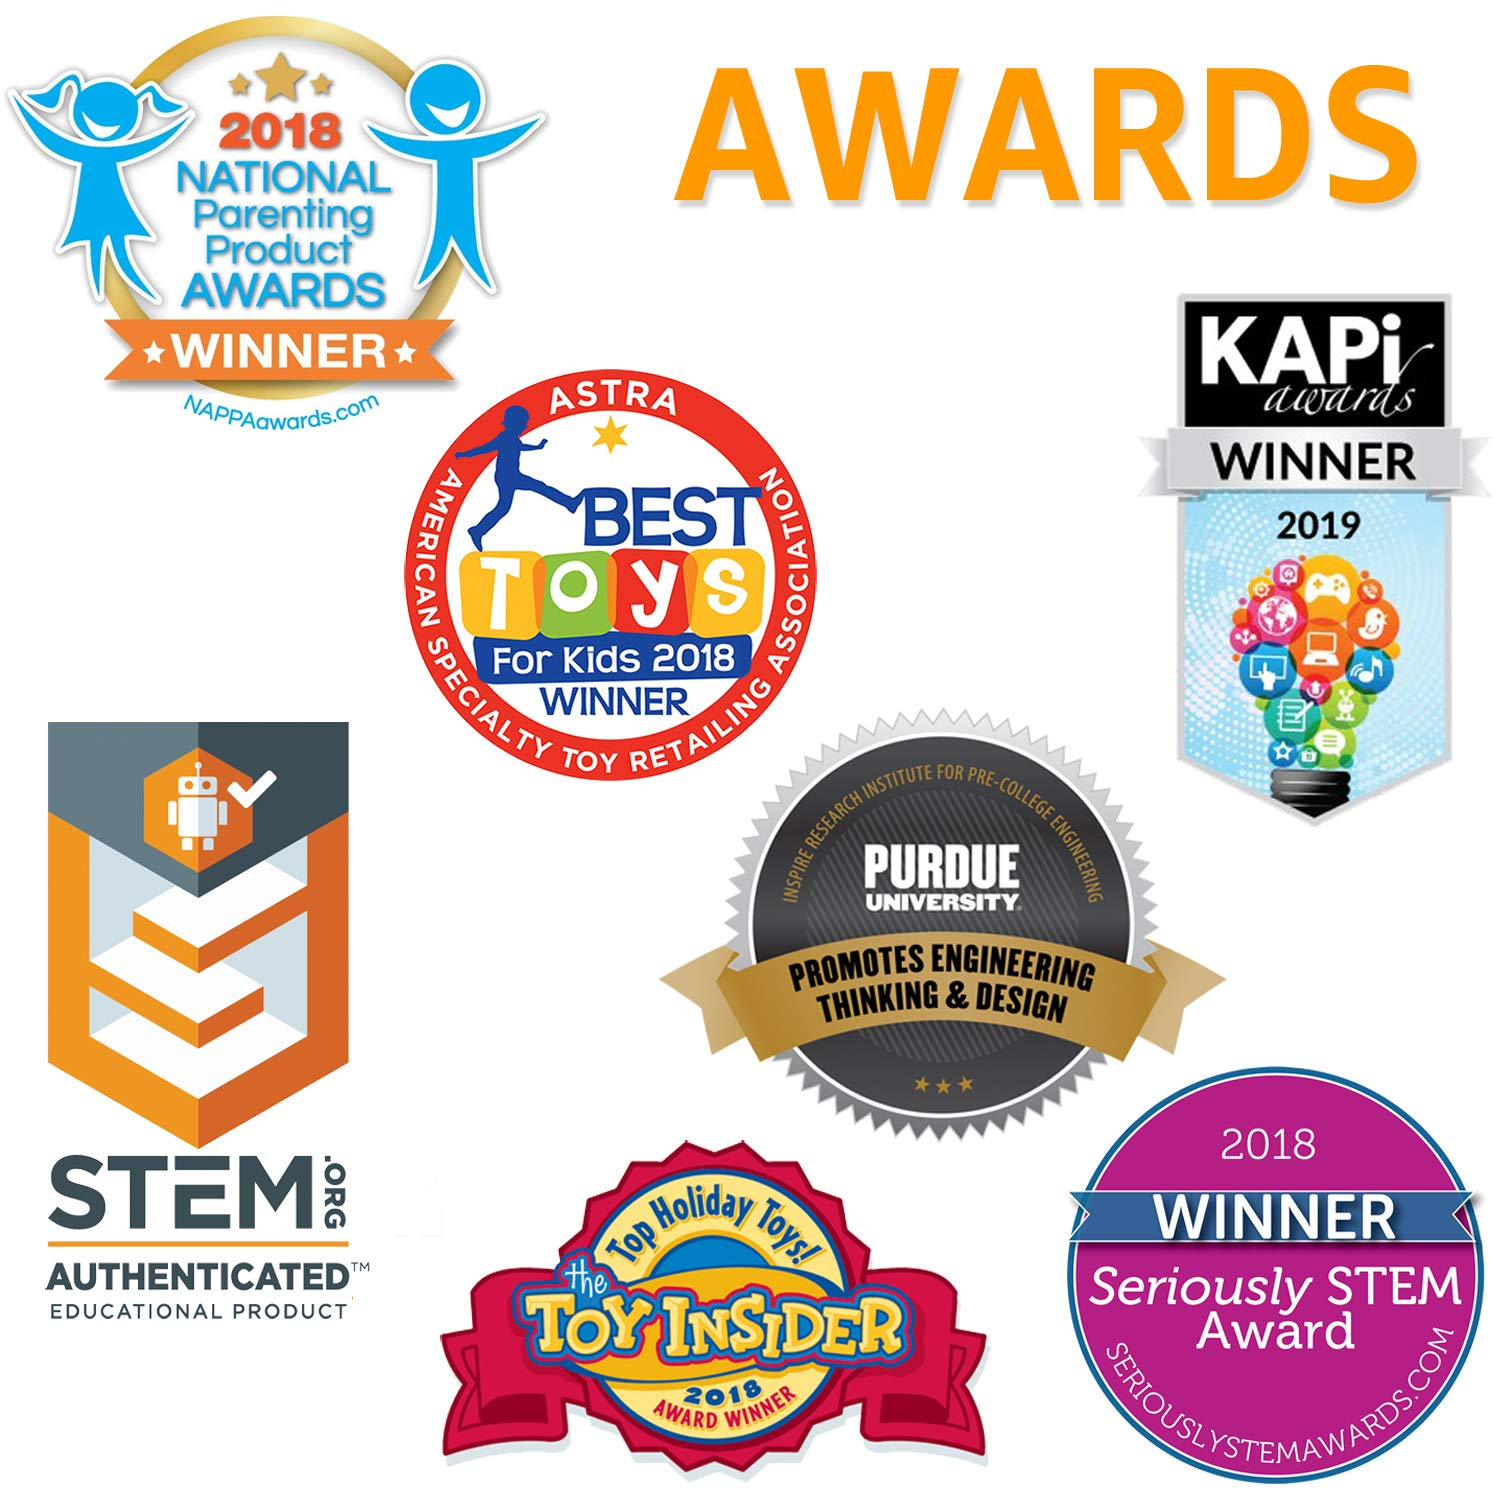 Snap Circuits Bric Structures Brick And Electronics Exploration Buy Elenco Green Alternative Energy Kit Online At Low Over 20 Stem Projects 4 Color Idea Book Modules 75